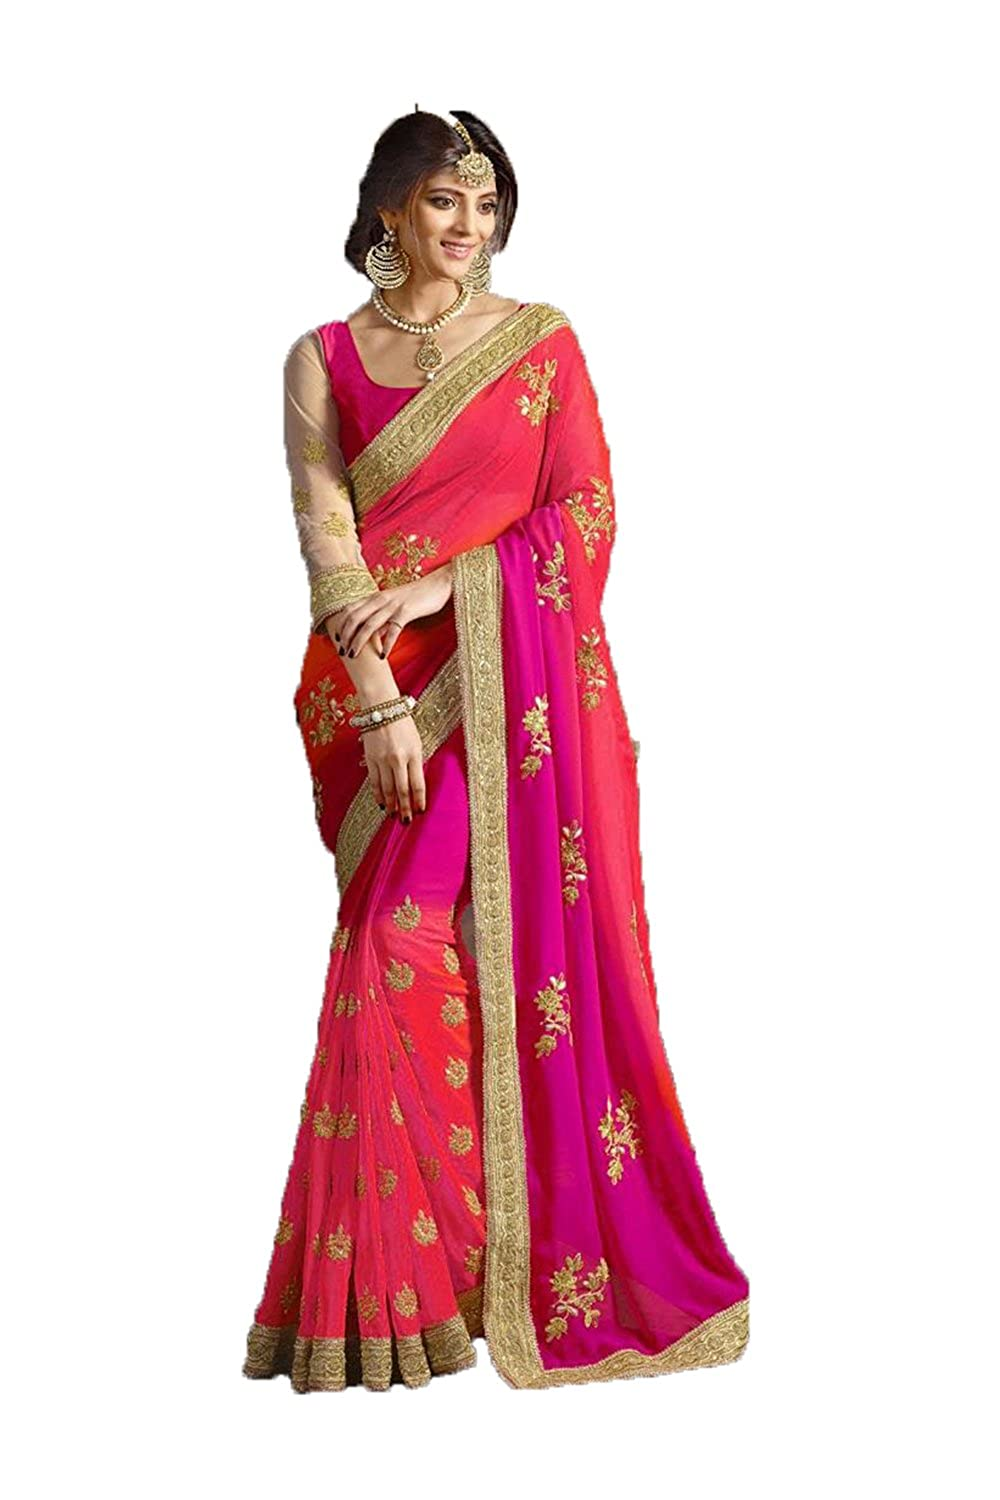 FourCorners2013 Indian Women Designer Party wear Purple Androse Pink Color Saree T6255